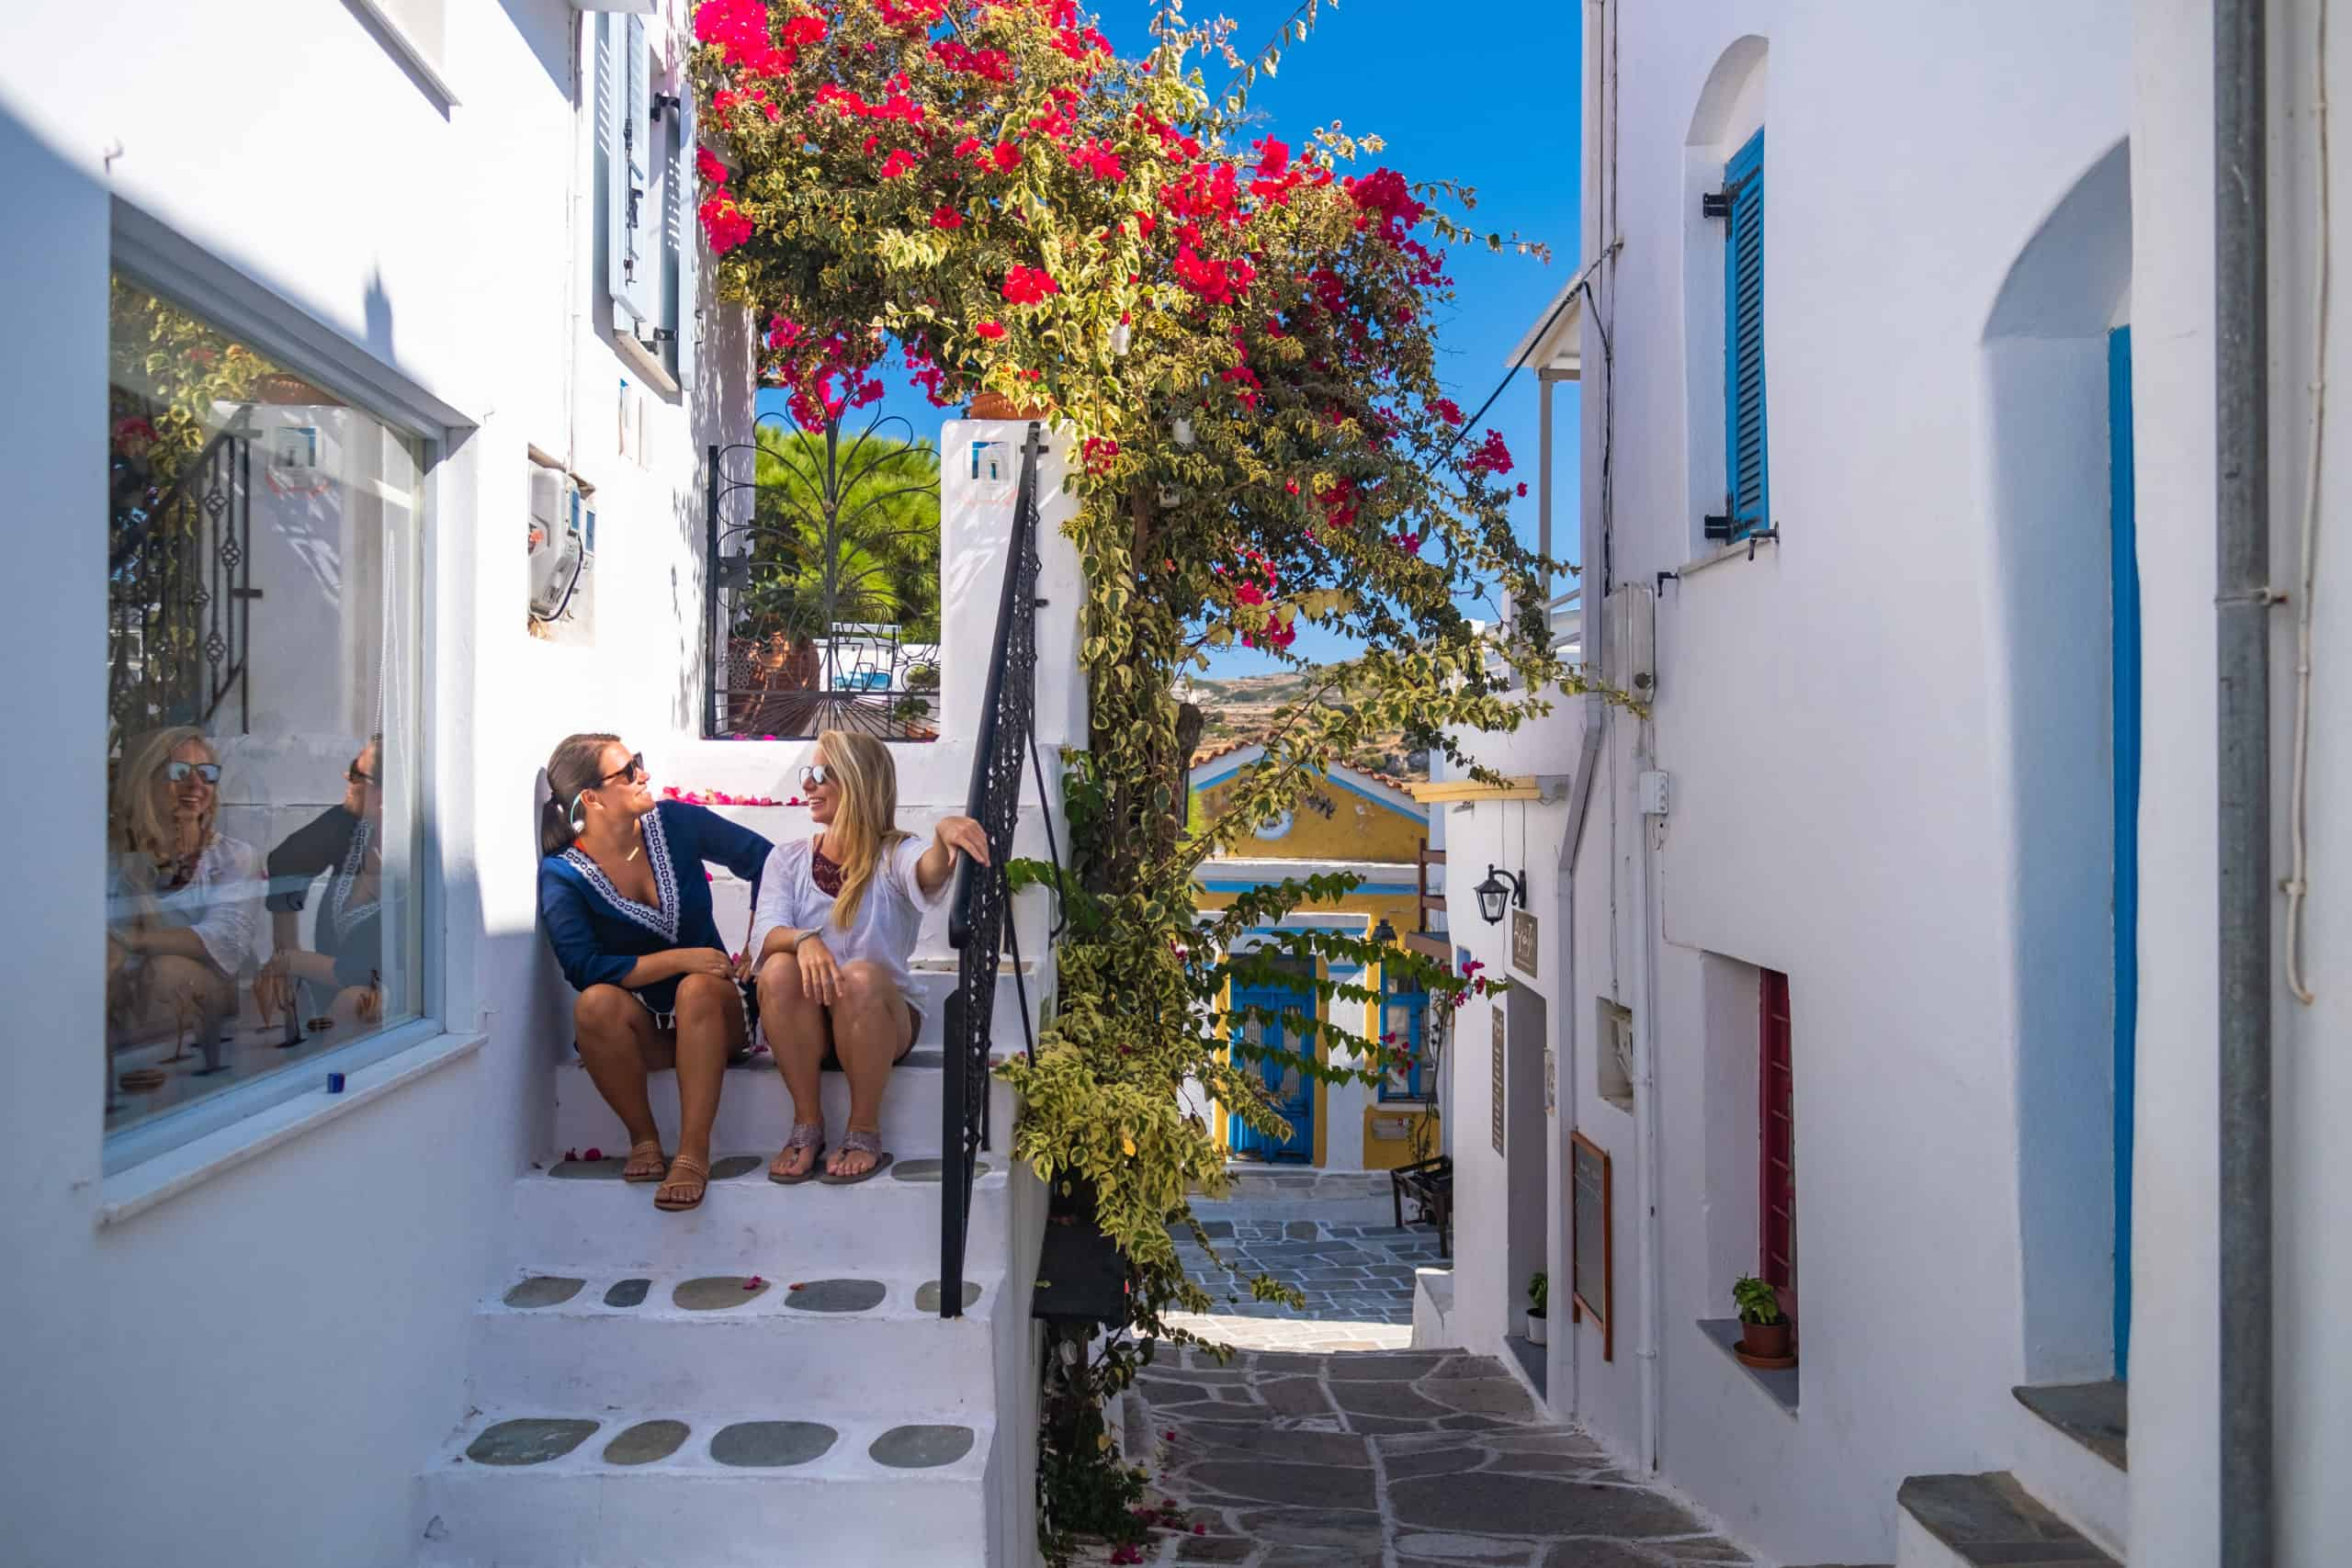 Trip to Greece Cost